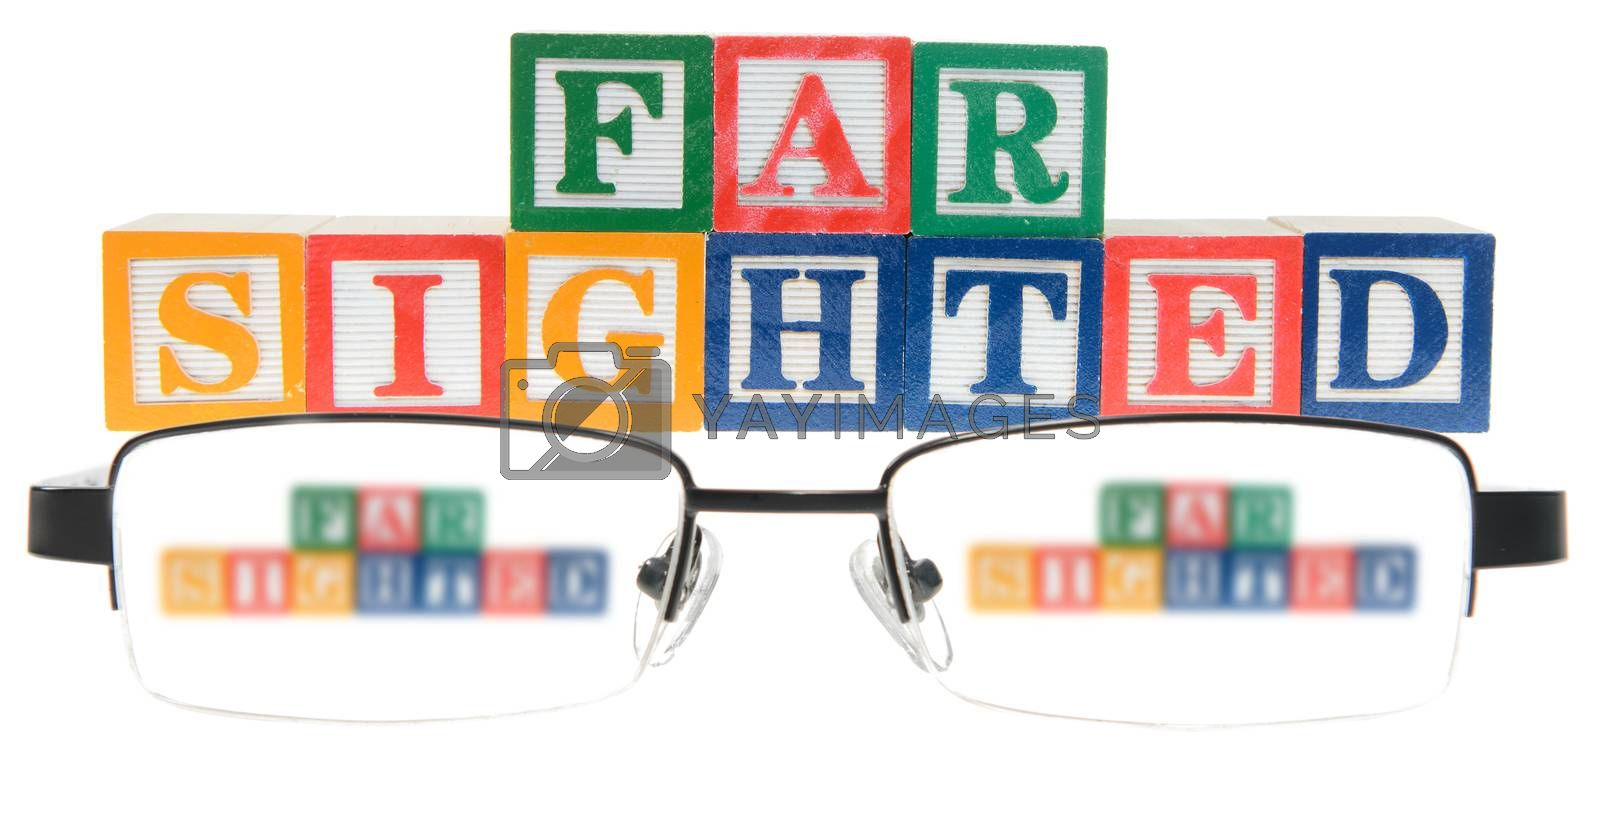 Letter blocks spelling far sighted with a pair of glasses. Isolated on a white background.